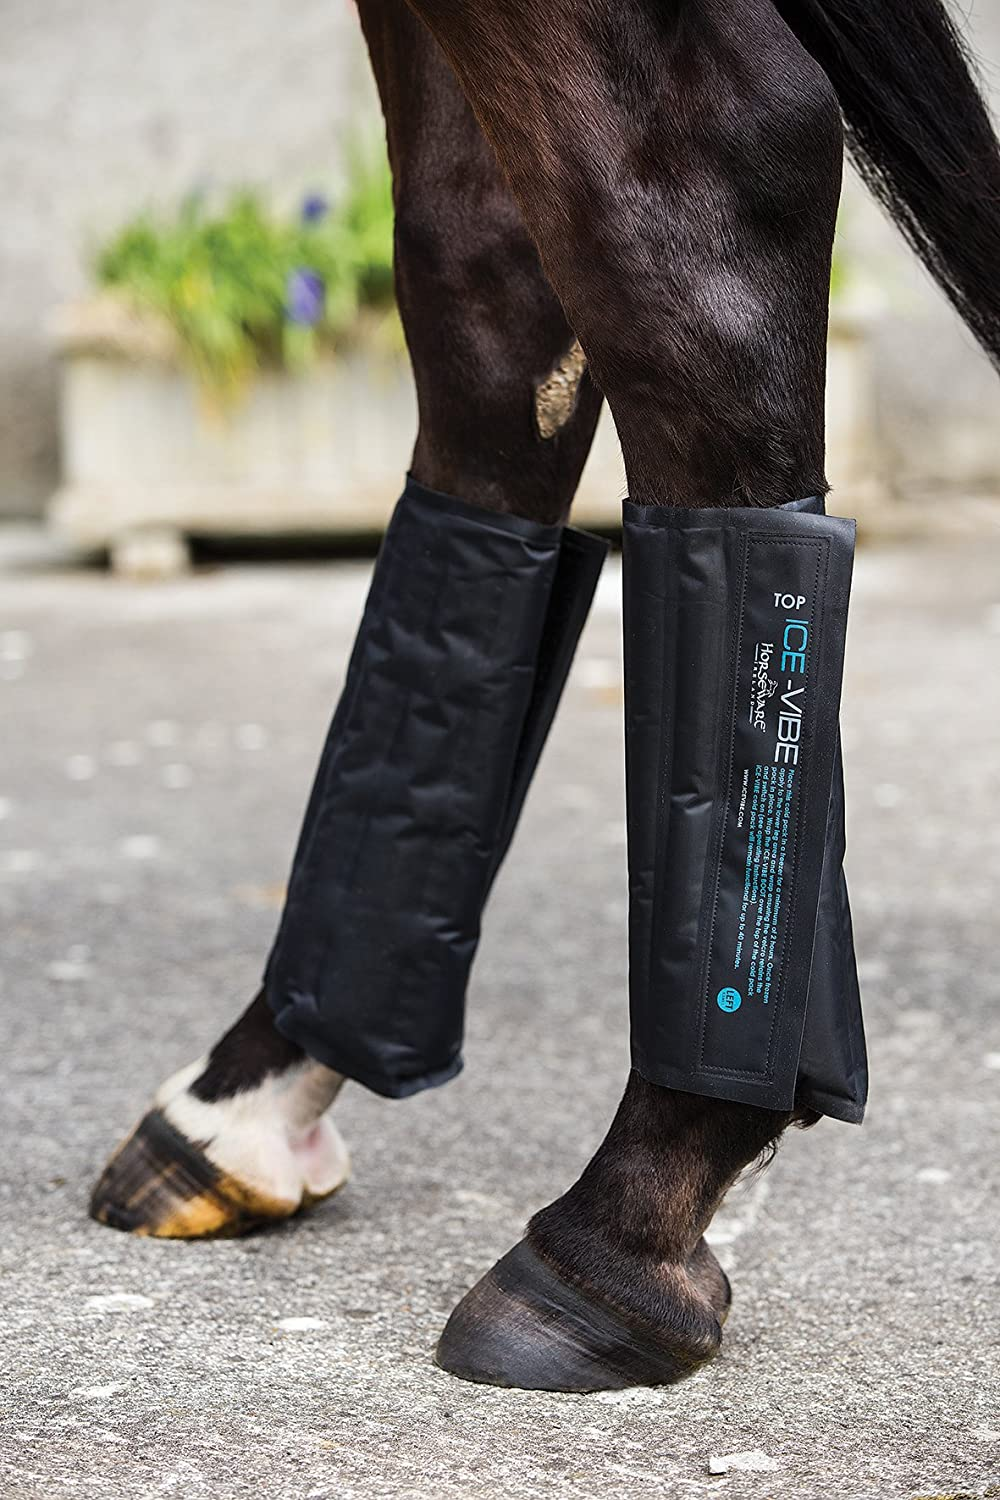 Horseware Ice-Vibe Boot Cold Pack HORSEWARE PRODUCTS LTD